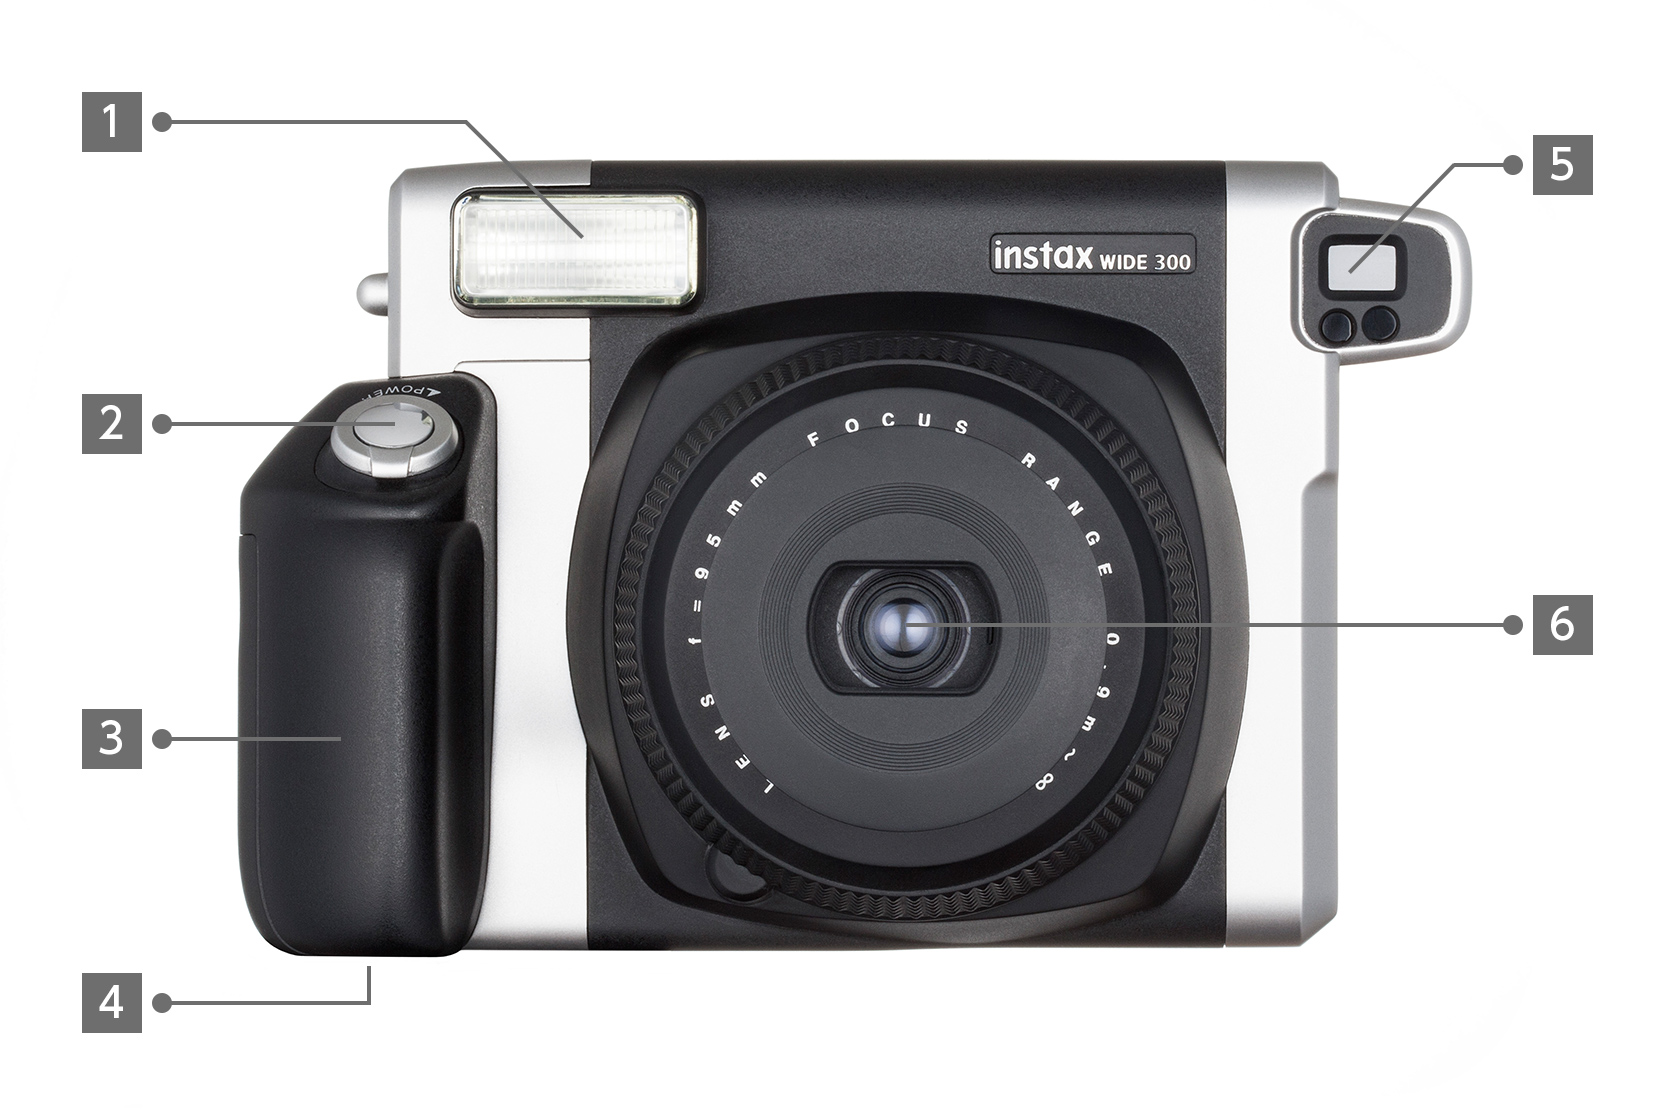 [photo] Front view of a Black Instax Wide 300 with different parts labeled 1 through 6